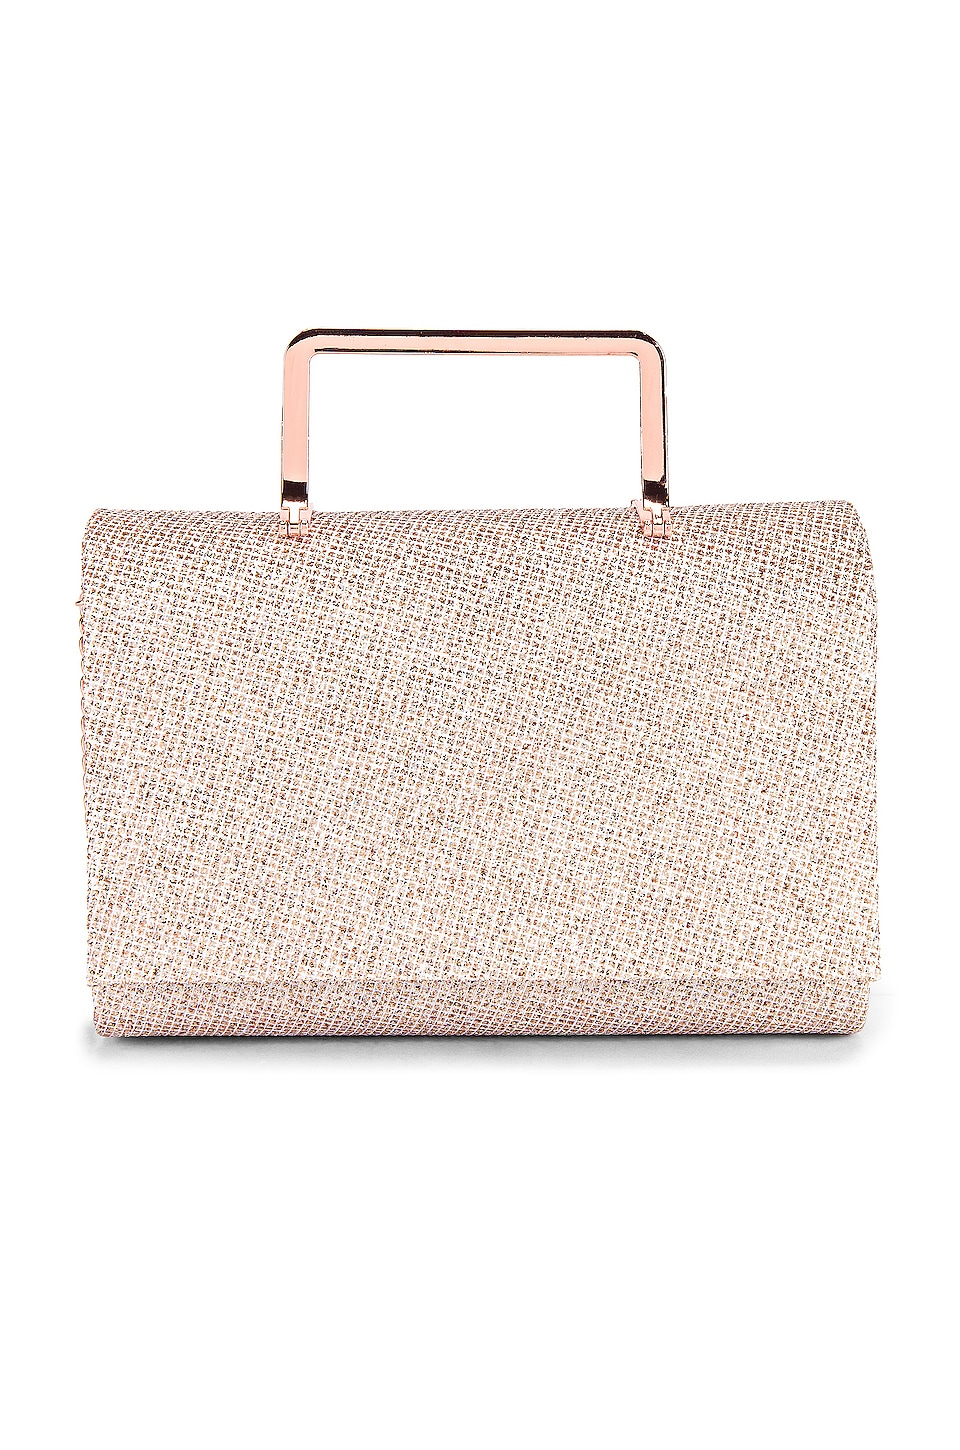 olga berg Ariana Glitter Top Handle Bag in Rose Gold